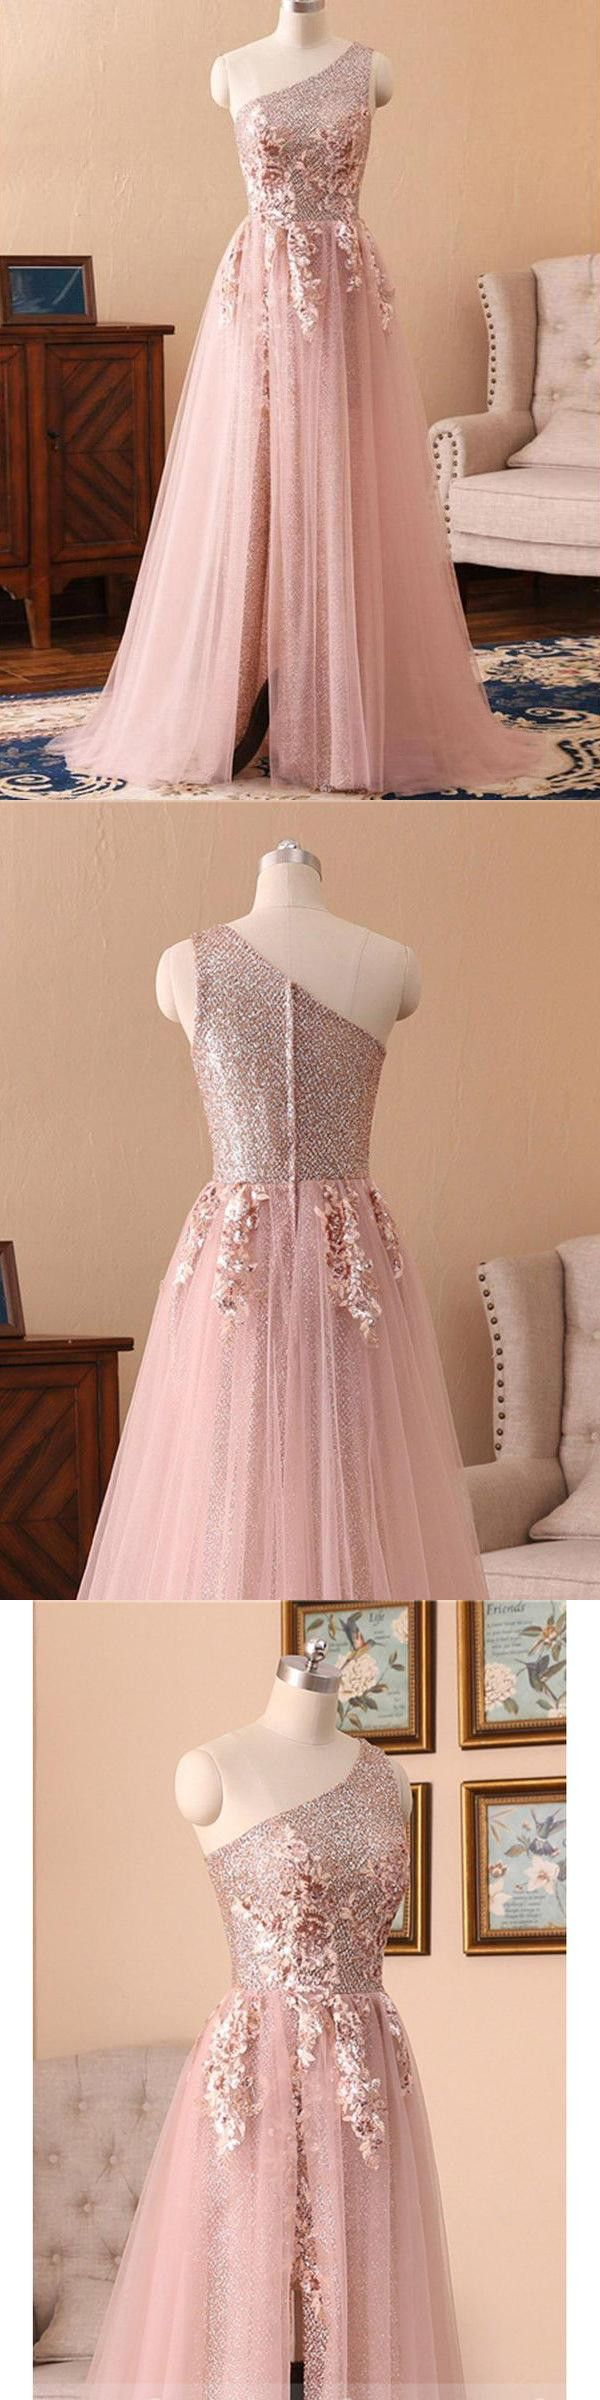 Chic Aline One Shoulder Sparkly Prom Dress Floor Length Prom